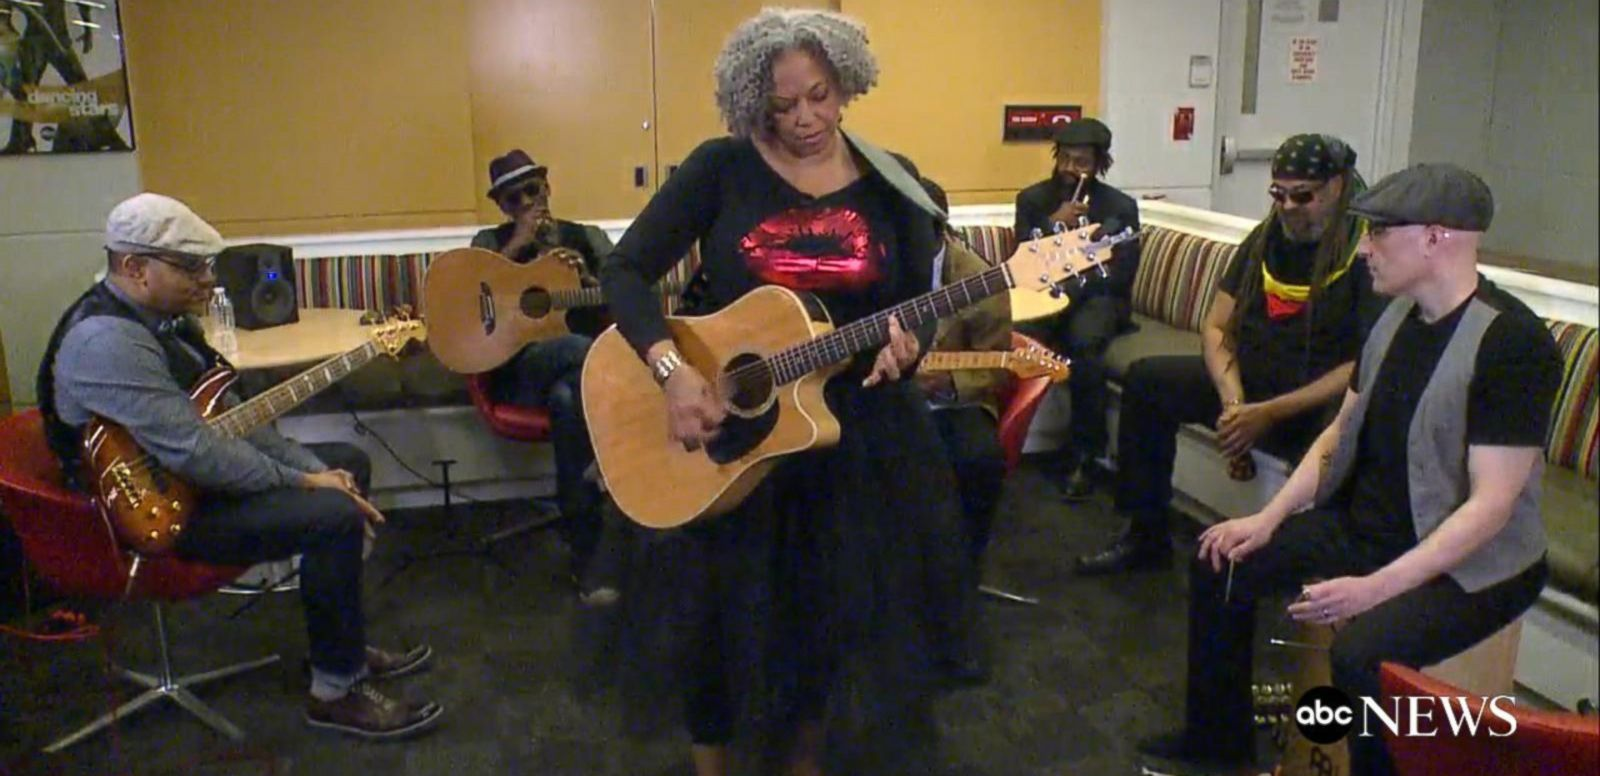 VIDEO: The Soulfolk Experience Performs Live